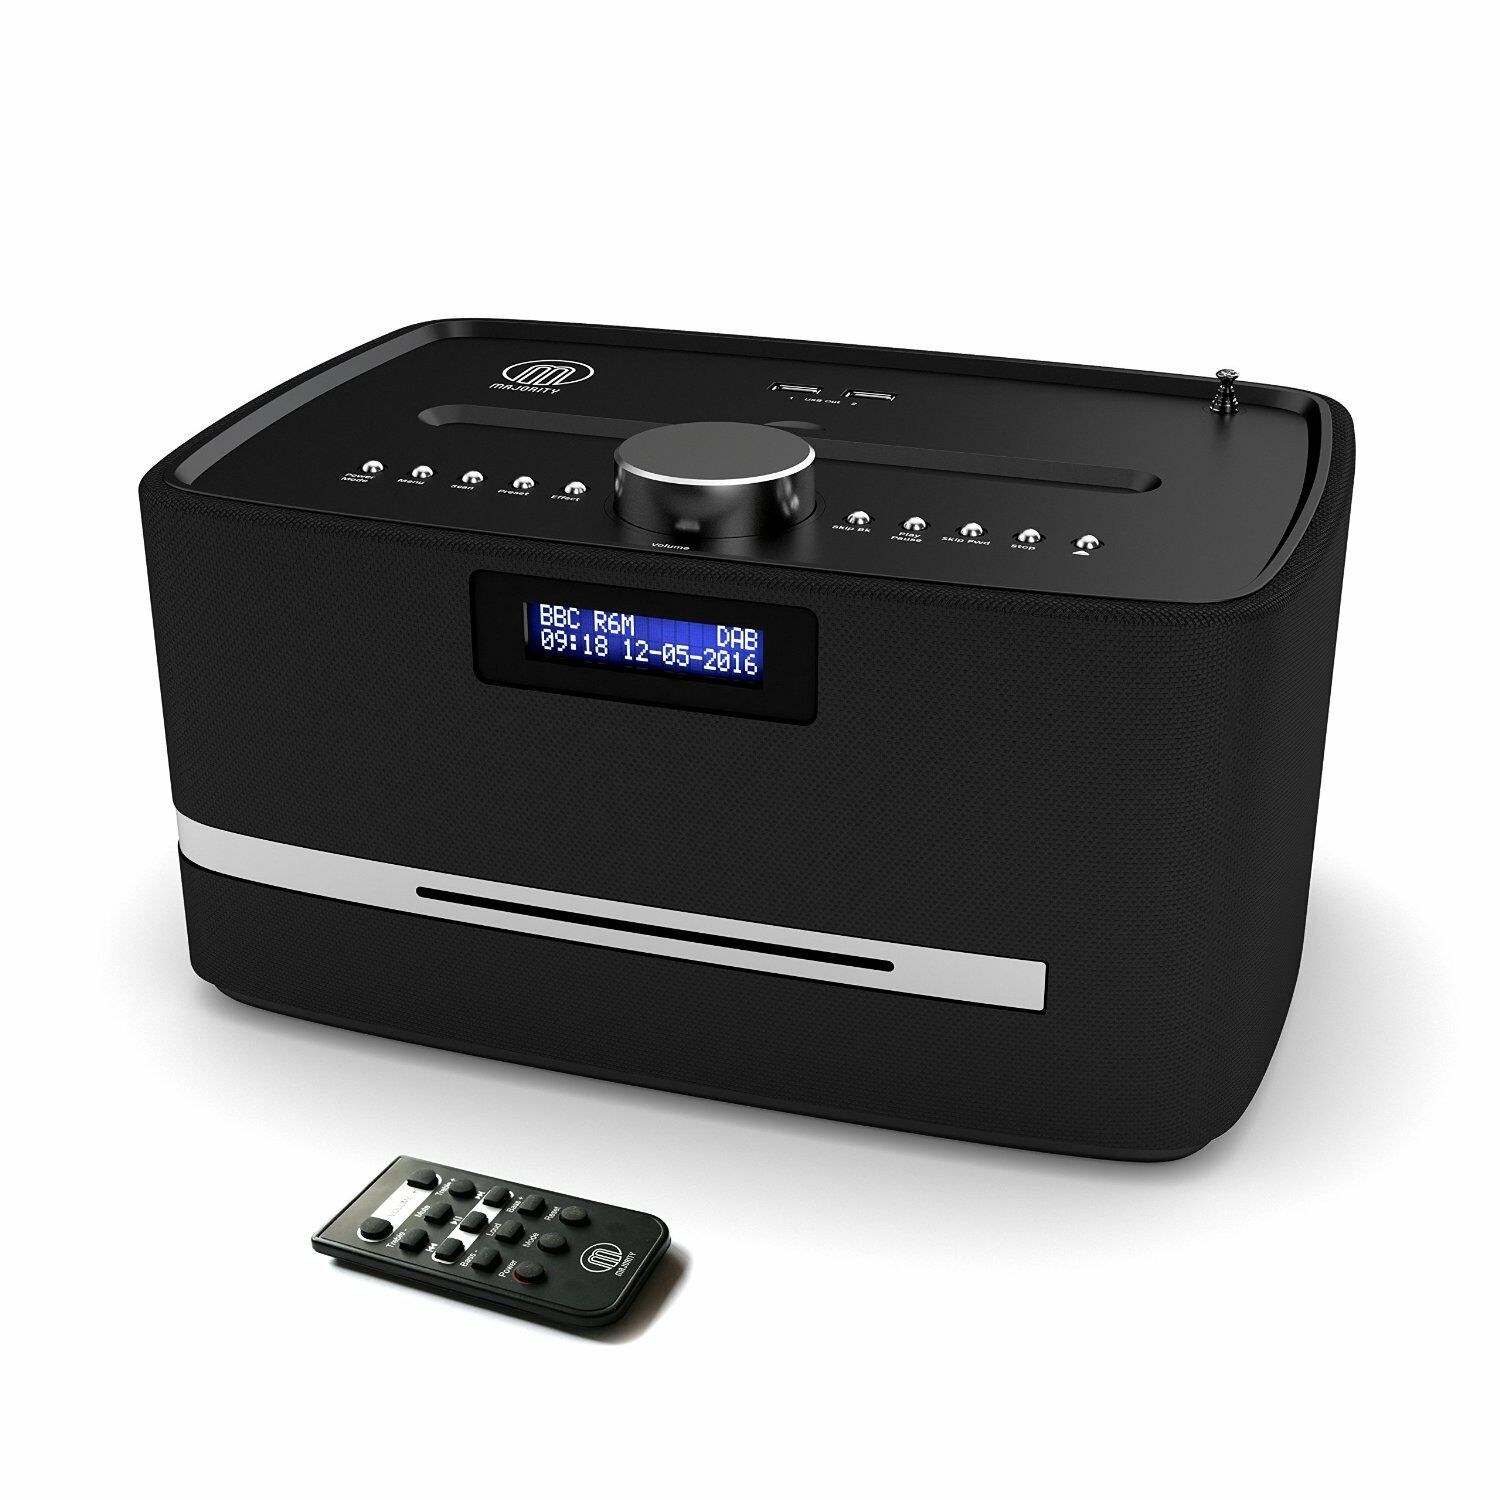 majority dab fm radio cd player alarm clock with bluetooth micro hifi system picclick uk. Black Bedroom Furniture Sets. Home Design Ideas